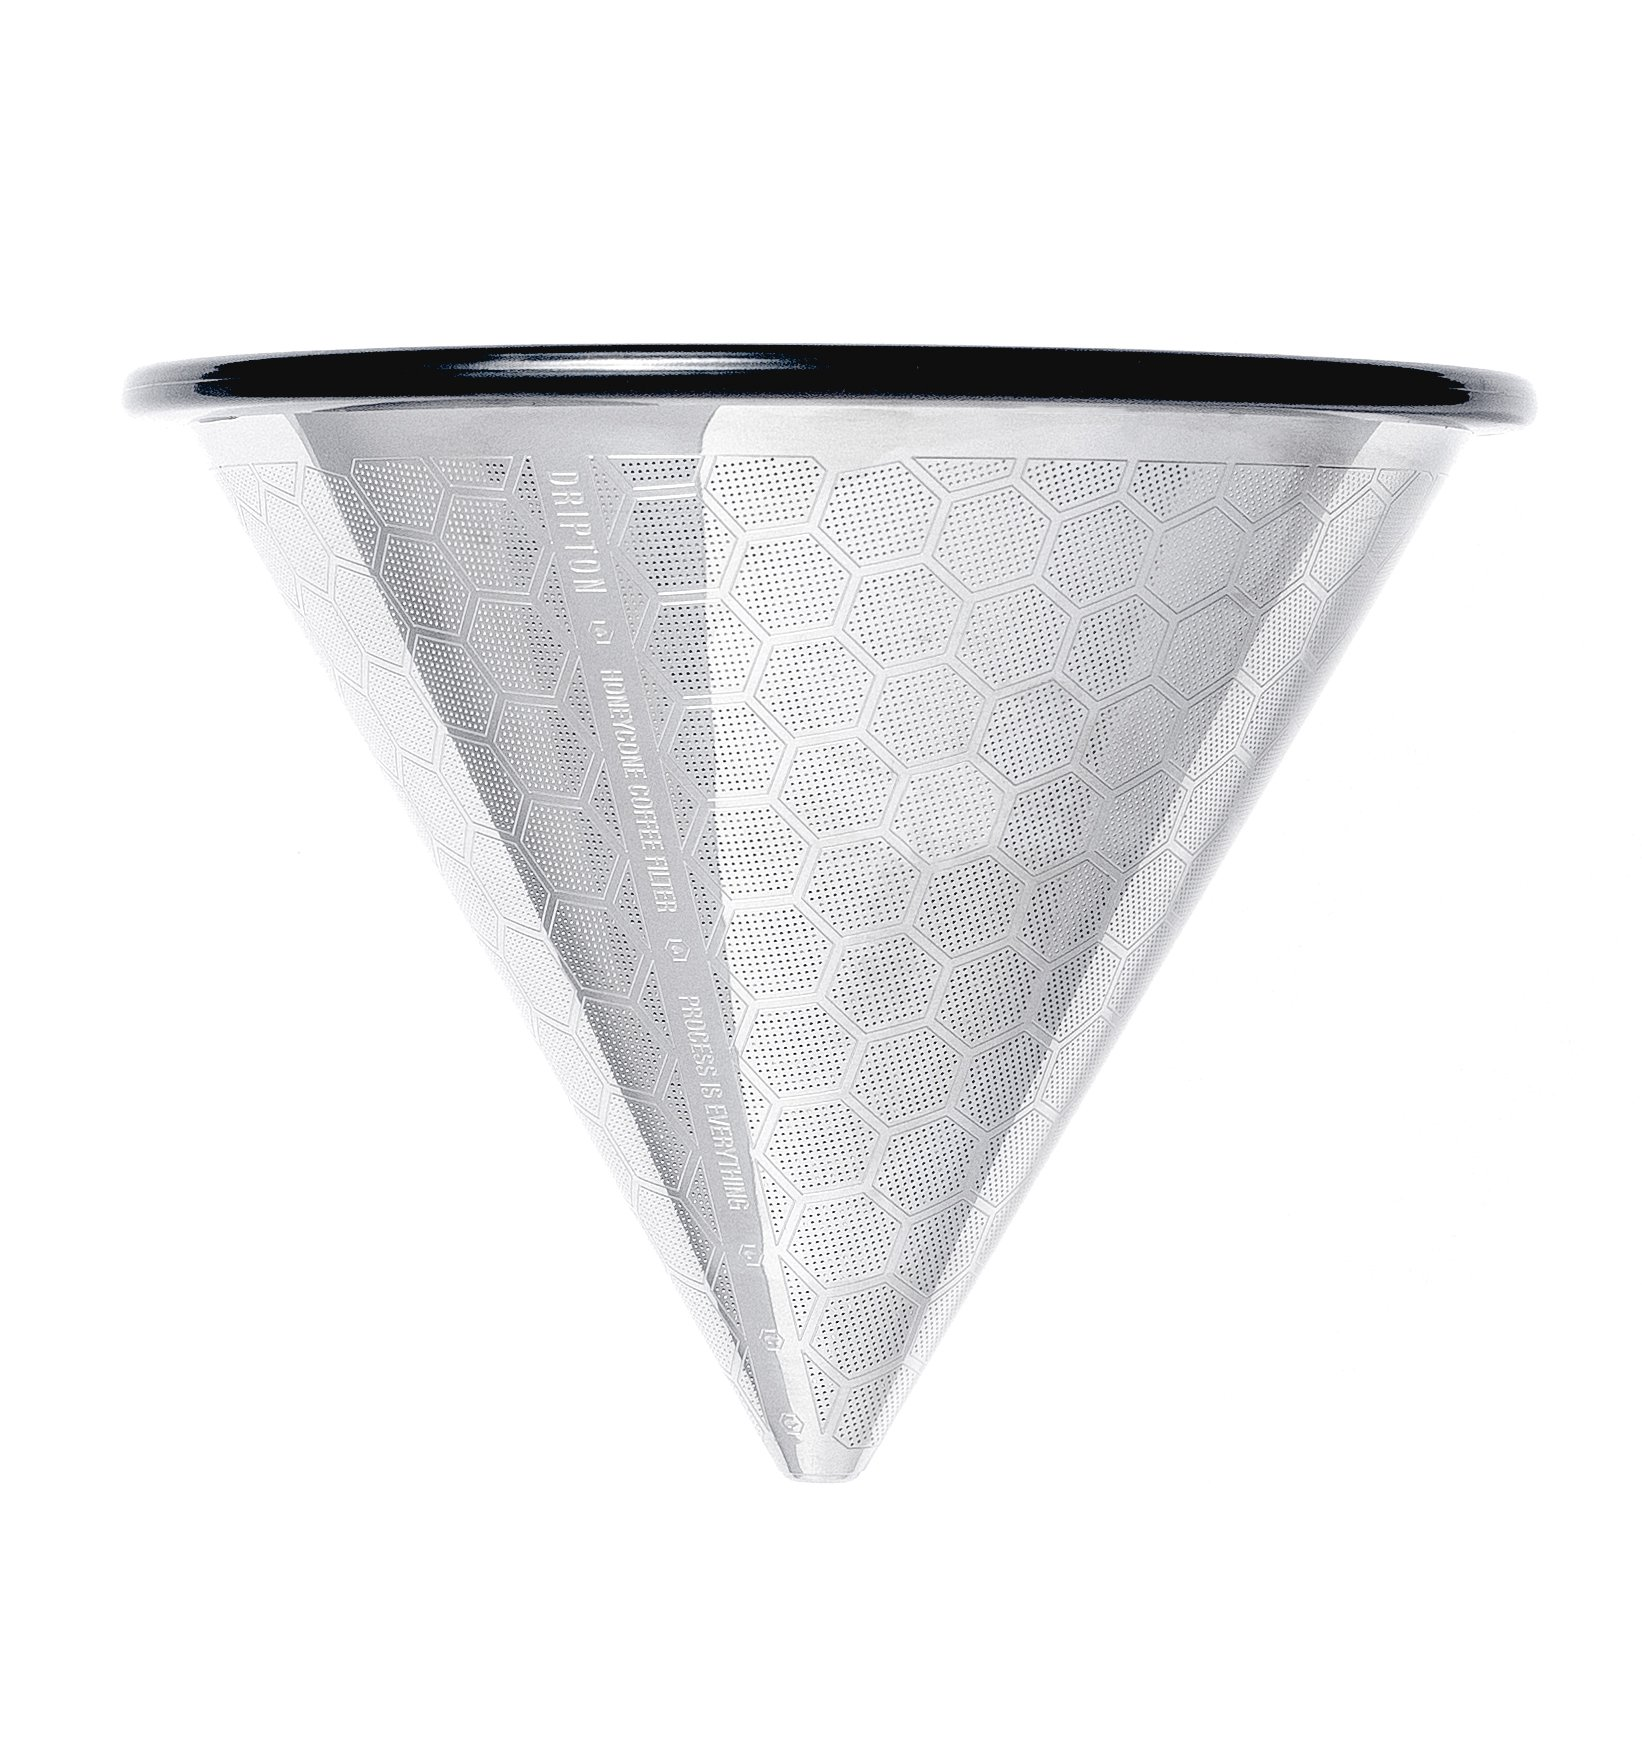 Pour Over Coffee Filter - 3rd Generation - Brew the Best Out of Your Coffee - Stainless Steel Reusable Cone Dripper. Made for Chemex Hario V60 and other Coffeemakers. HoneyCone by Dripton